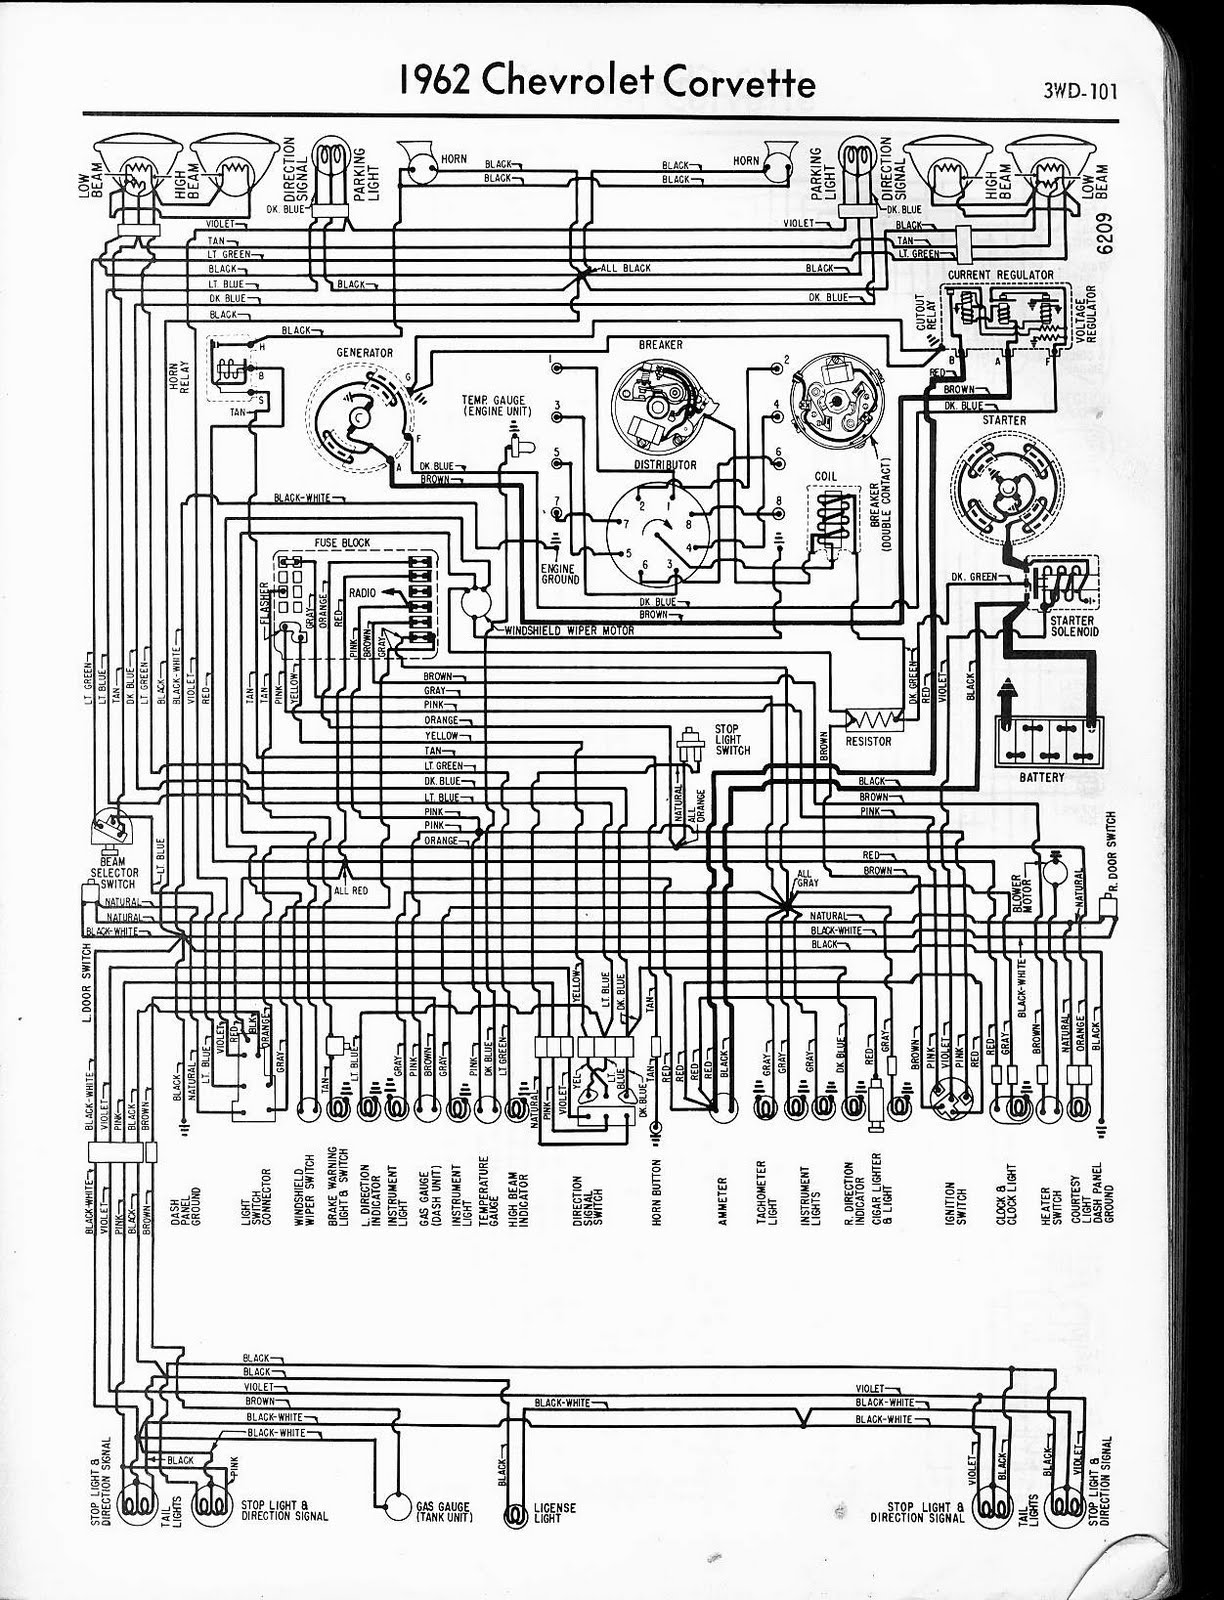 1969 corvette wiring harness wiring diagram third level rh 2 13 jacobwinterstein com 1960 corvette wiring [ 1224 x 1600 Pixel ]